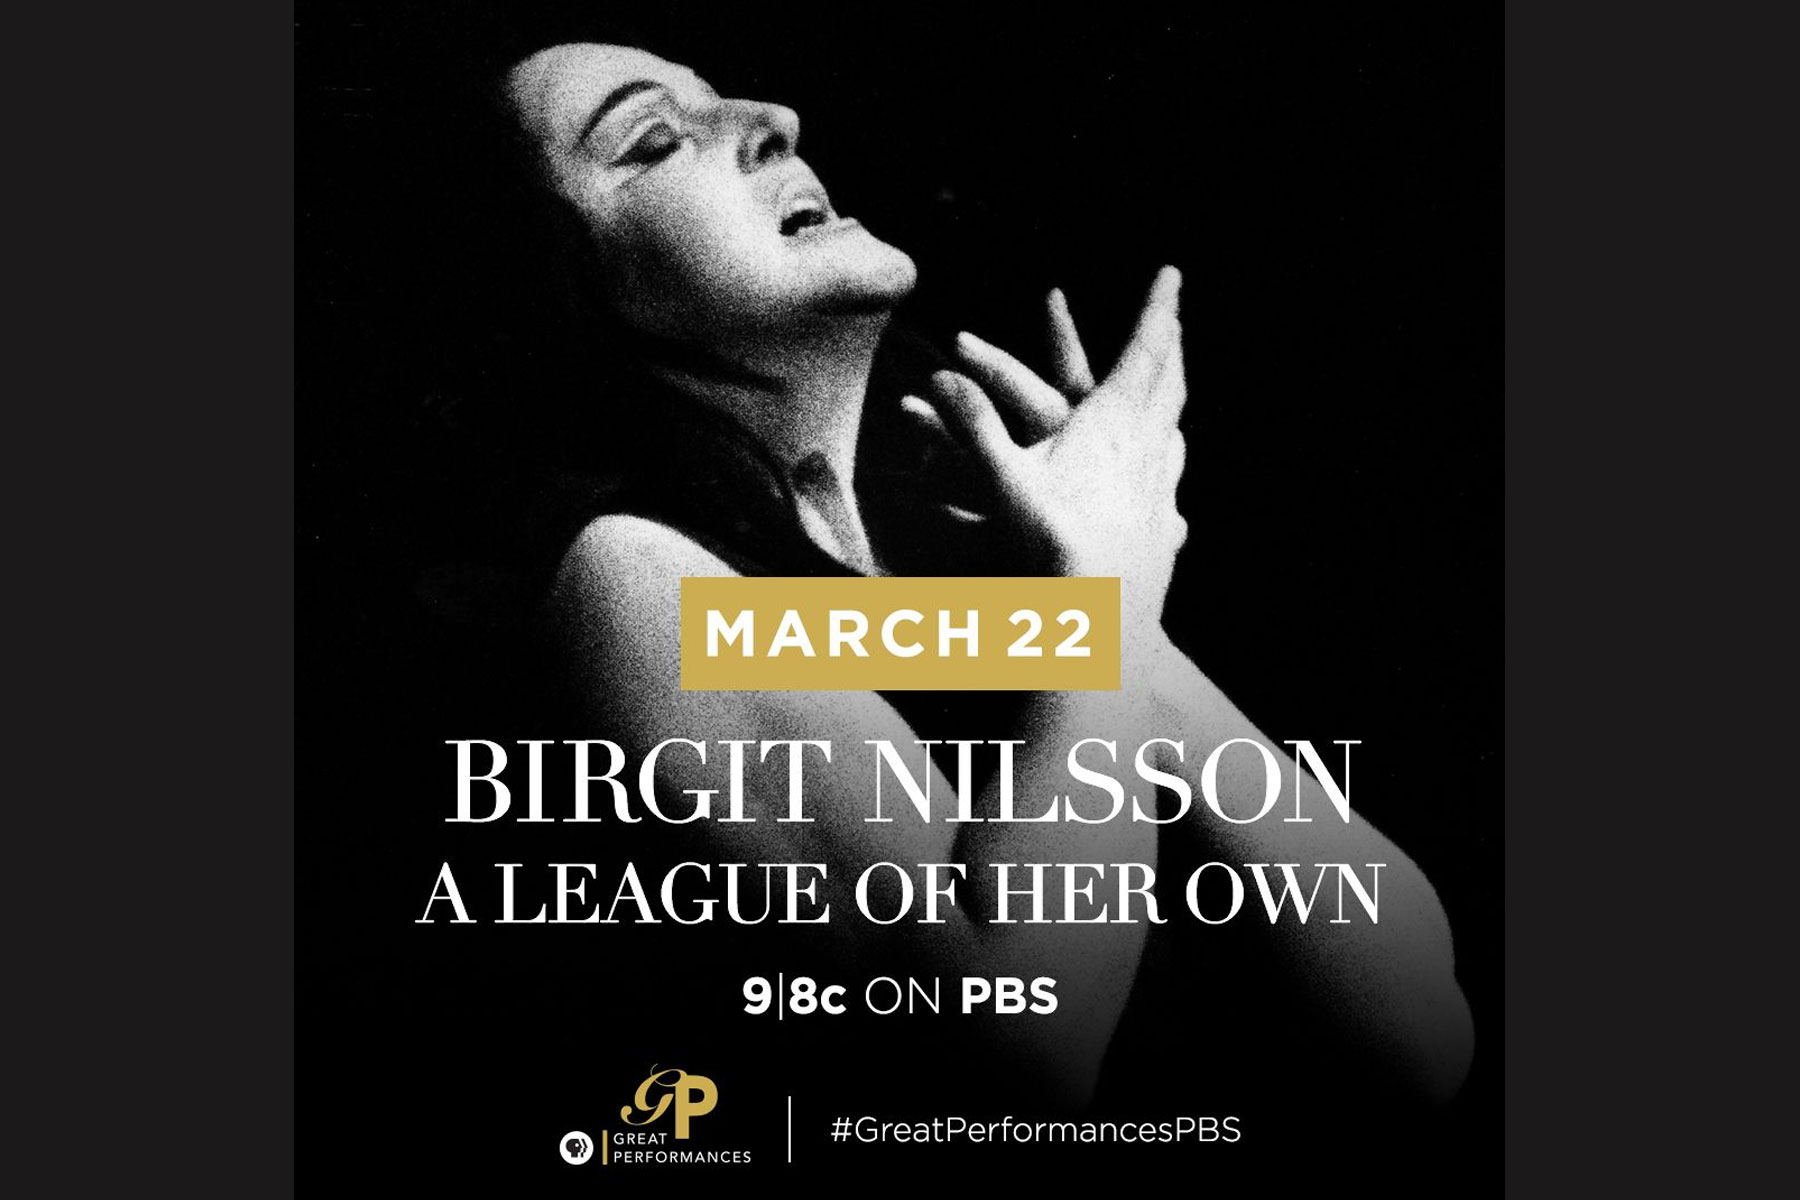 The Great Performance team at WNET broadcast the Birgit Nilsson documentary: A League of Her Own